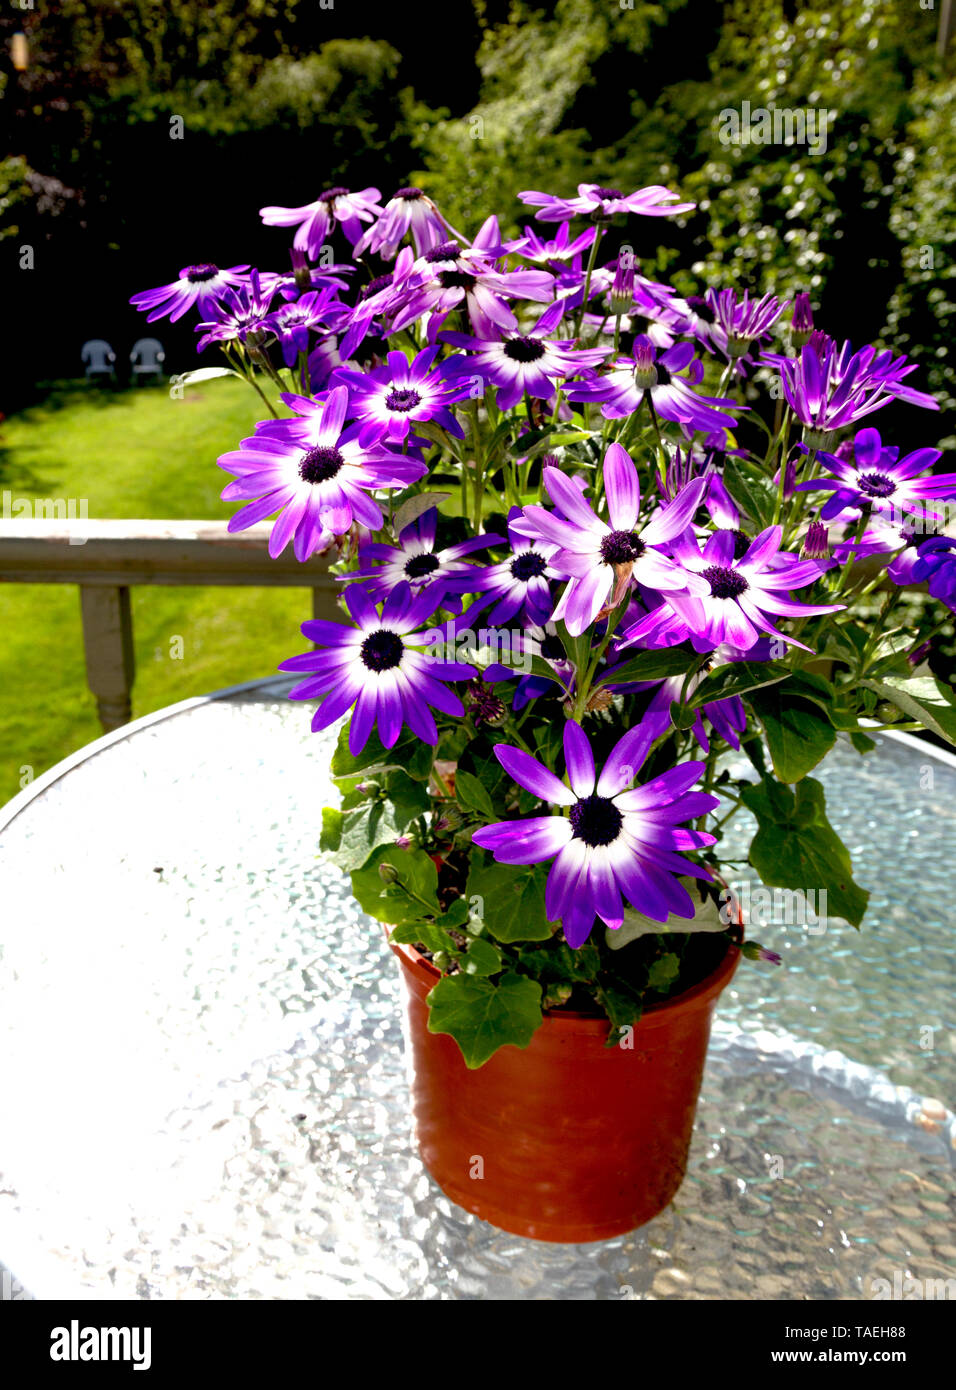 Violet senetti flower( Pericallis) in a brown flower pot on a table - Stock Image